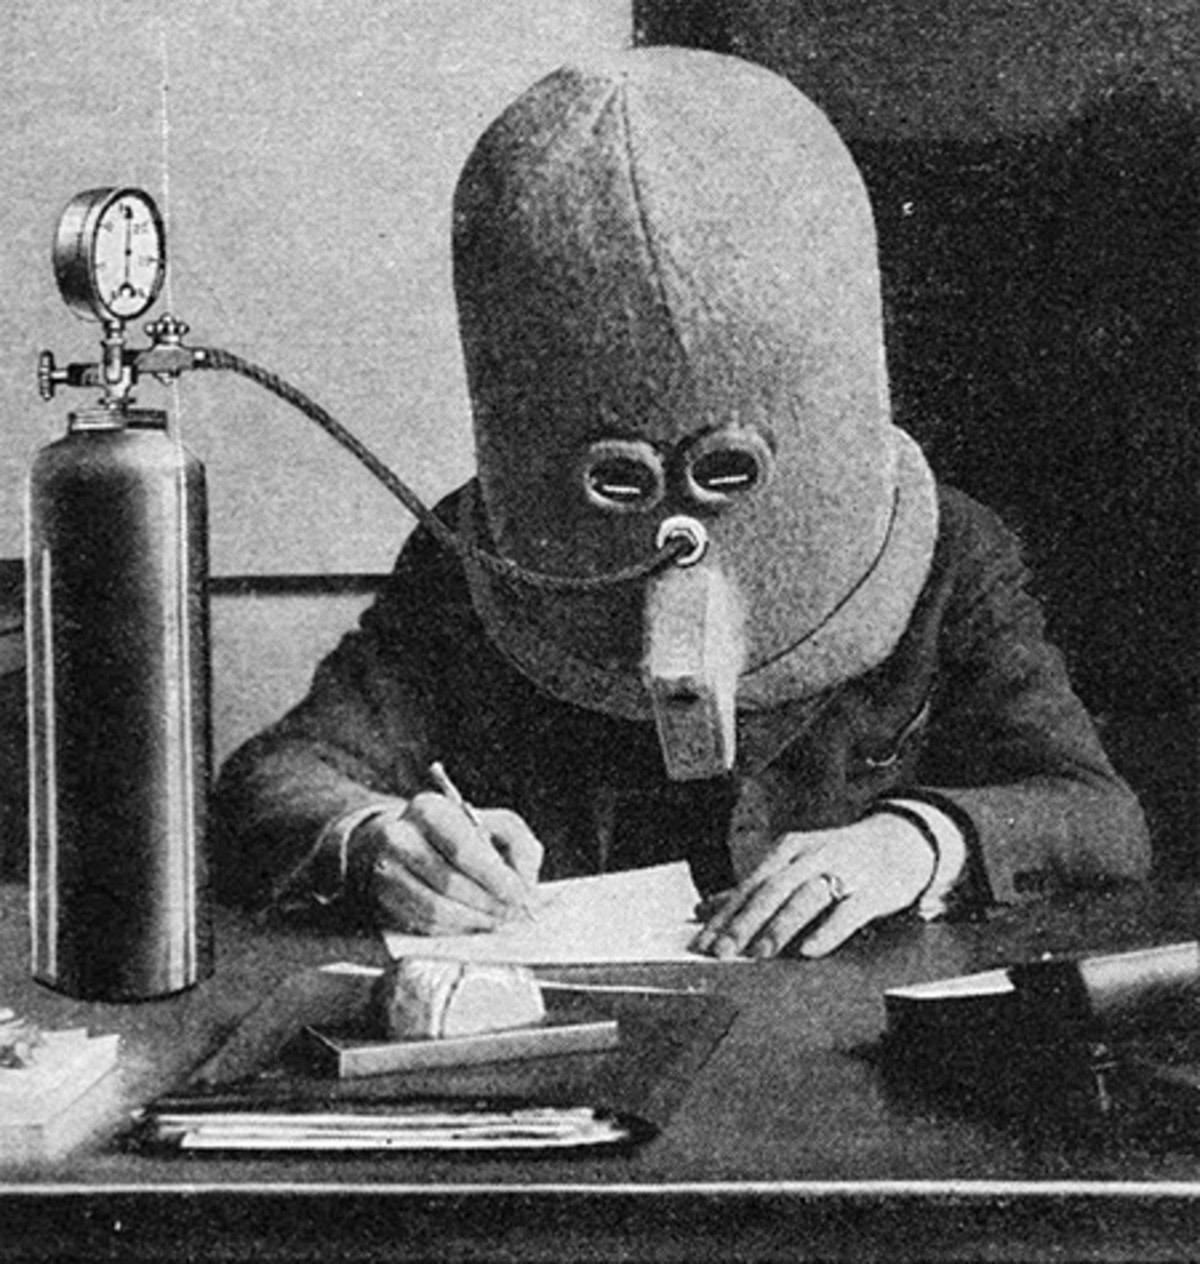 The Isolator Helmet. Innovative helmet designed by Hugo Gernsback eliminates distractions and helps people concentrate on their work. The Isolator Helmet blocks